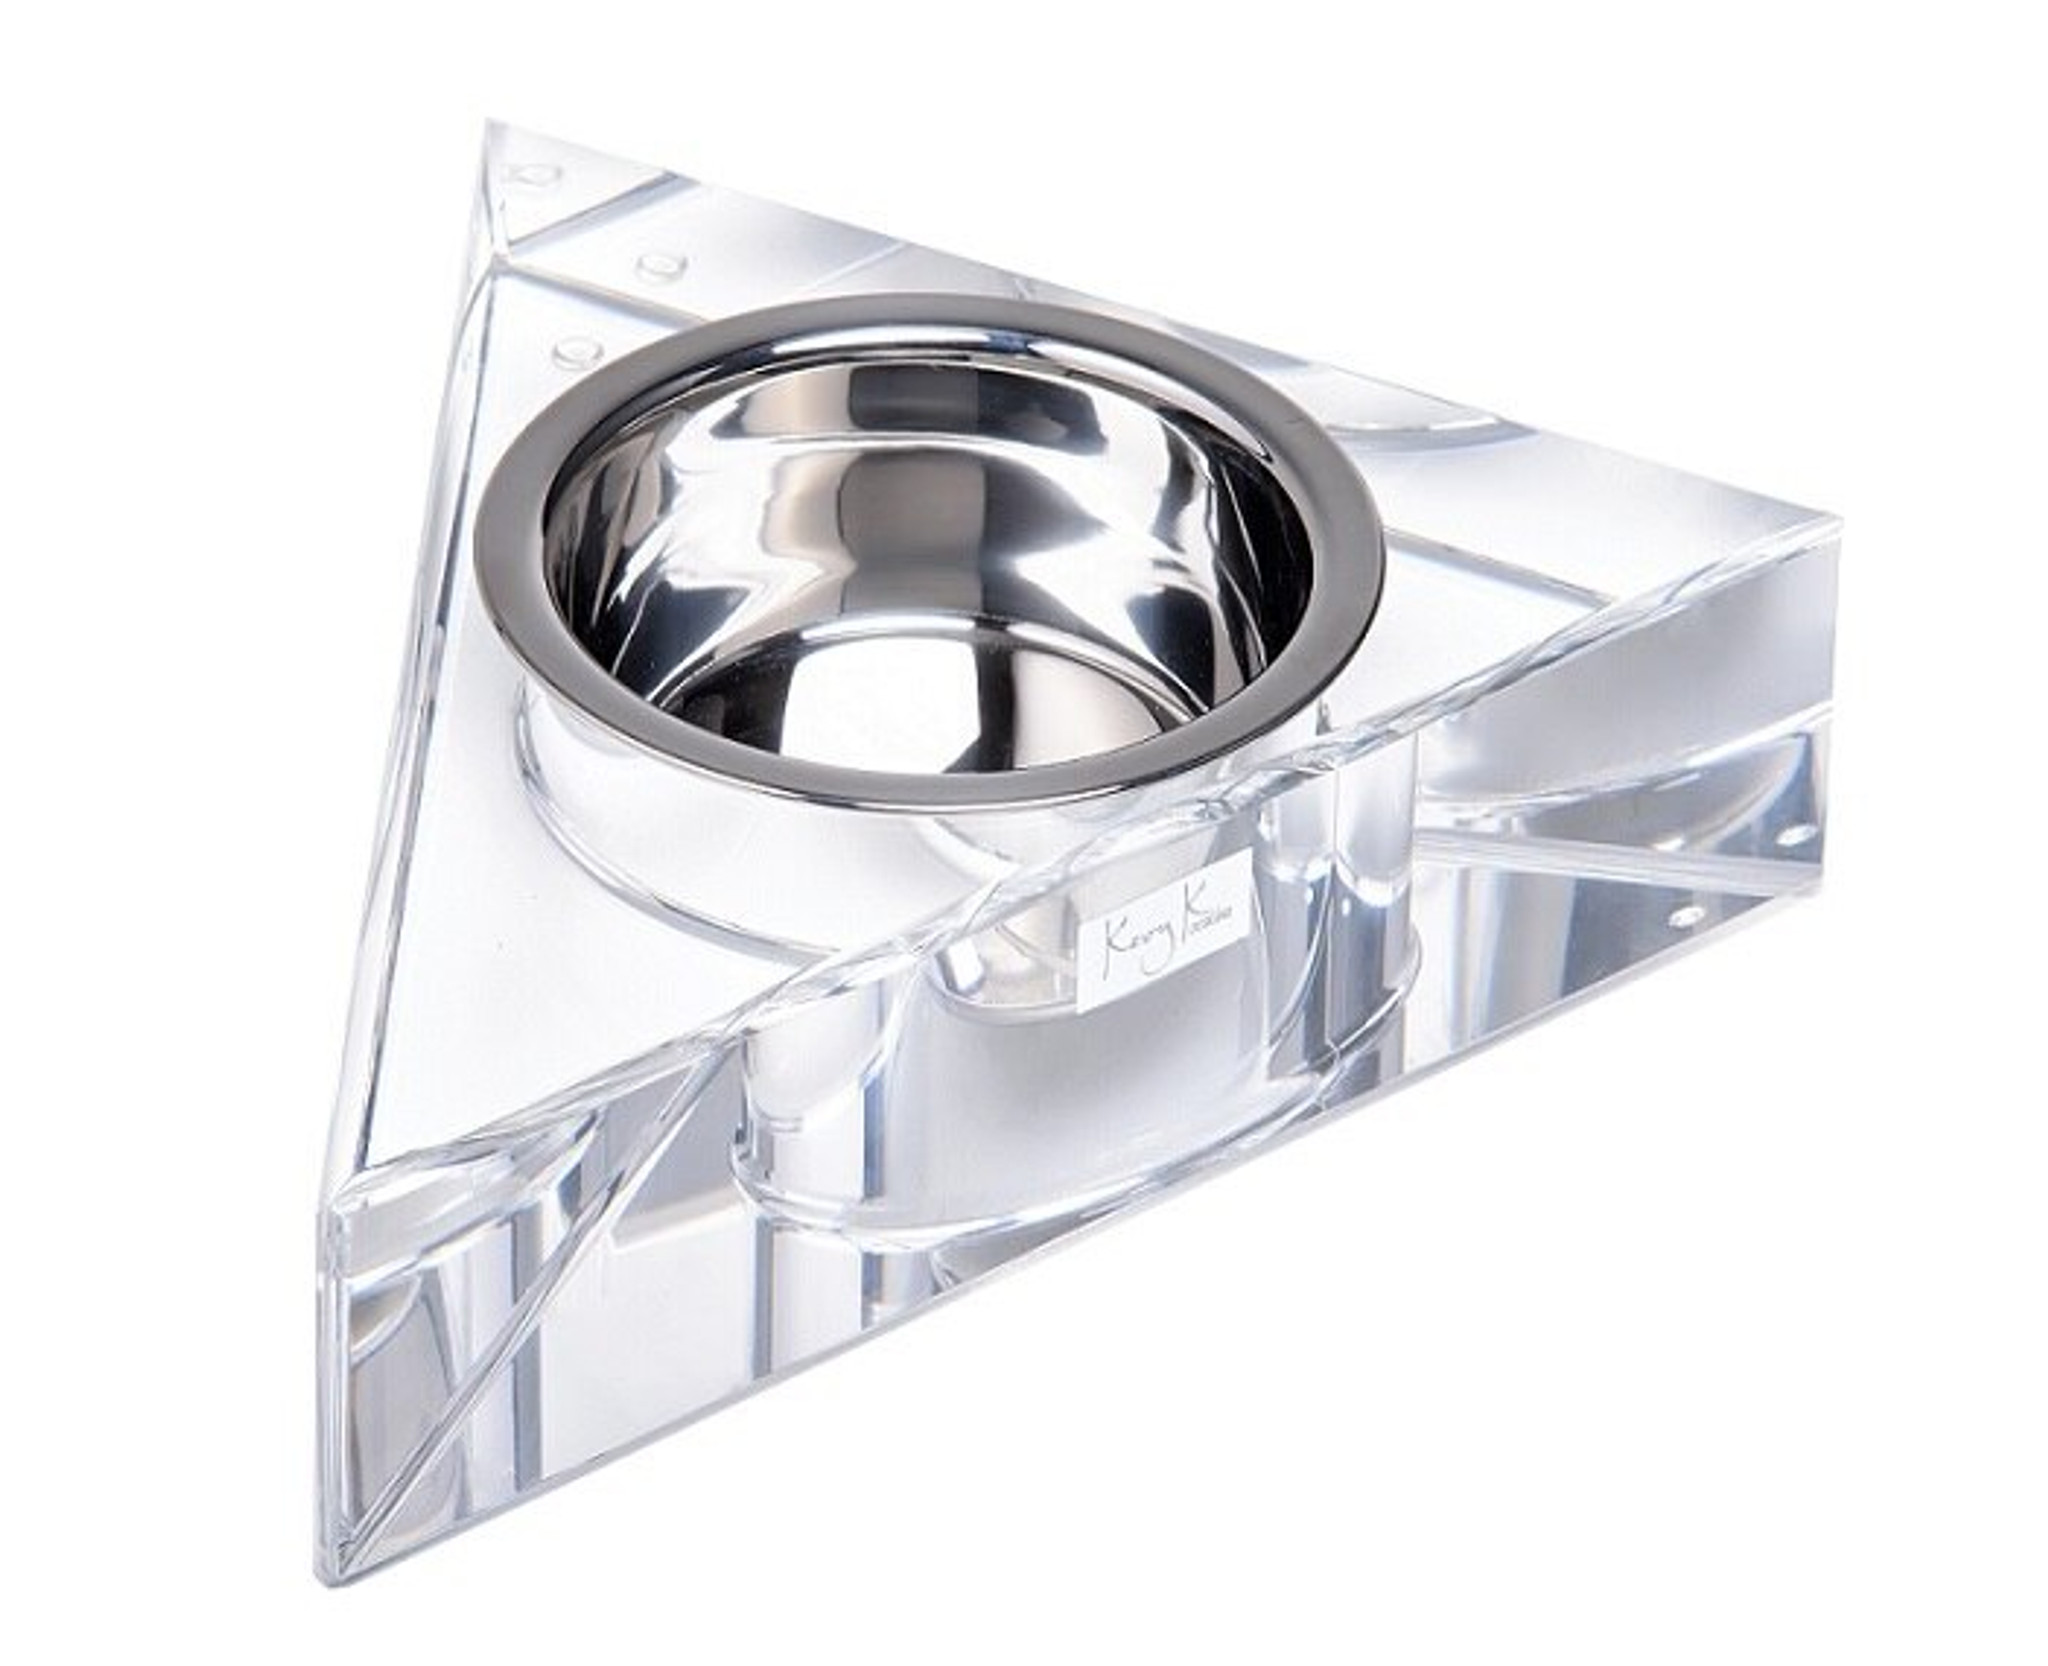 acrylic dog bowl stand clear lucite transparent base raised modern chic sophisticated pet bowl feeder cheap